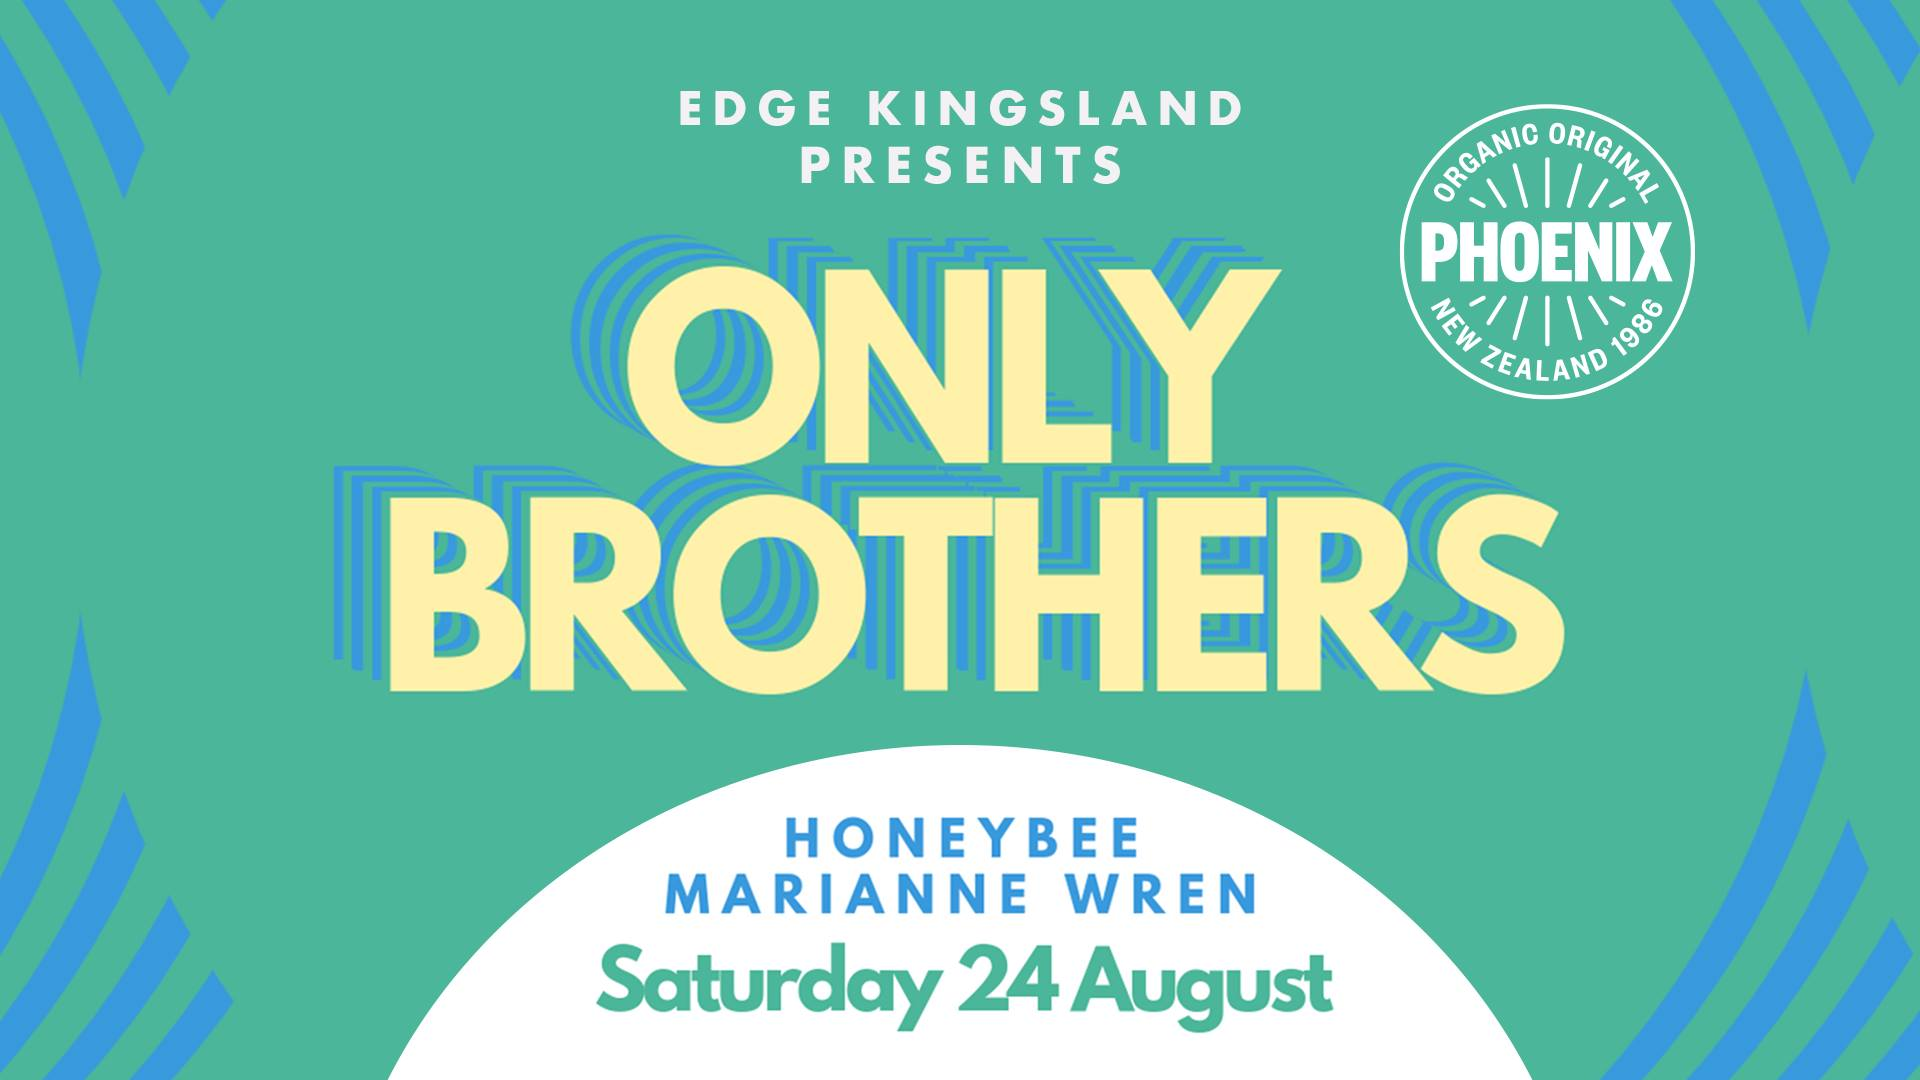 Only Brothers, honeybee, Marianne Wren